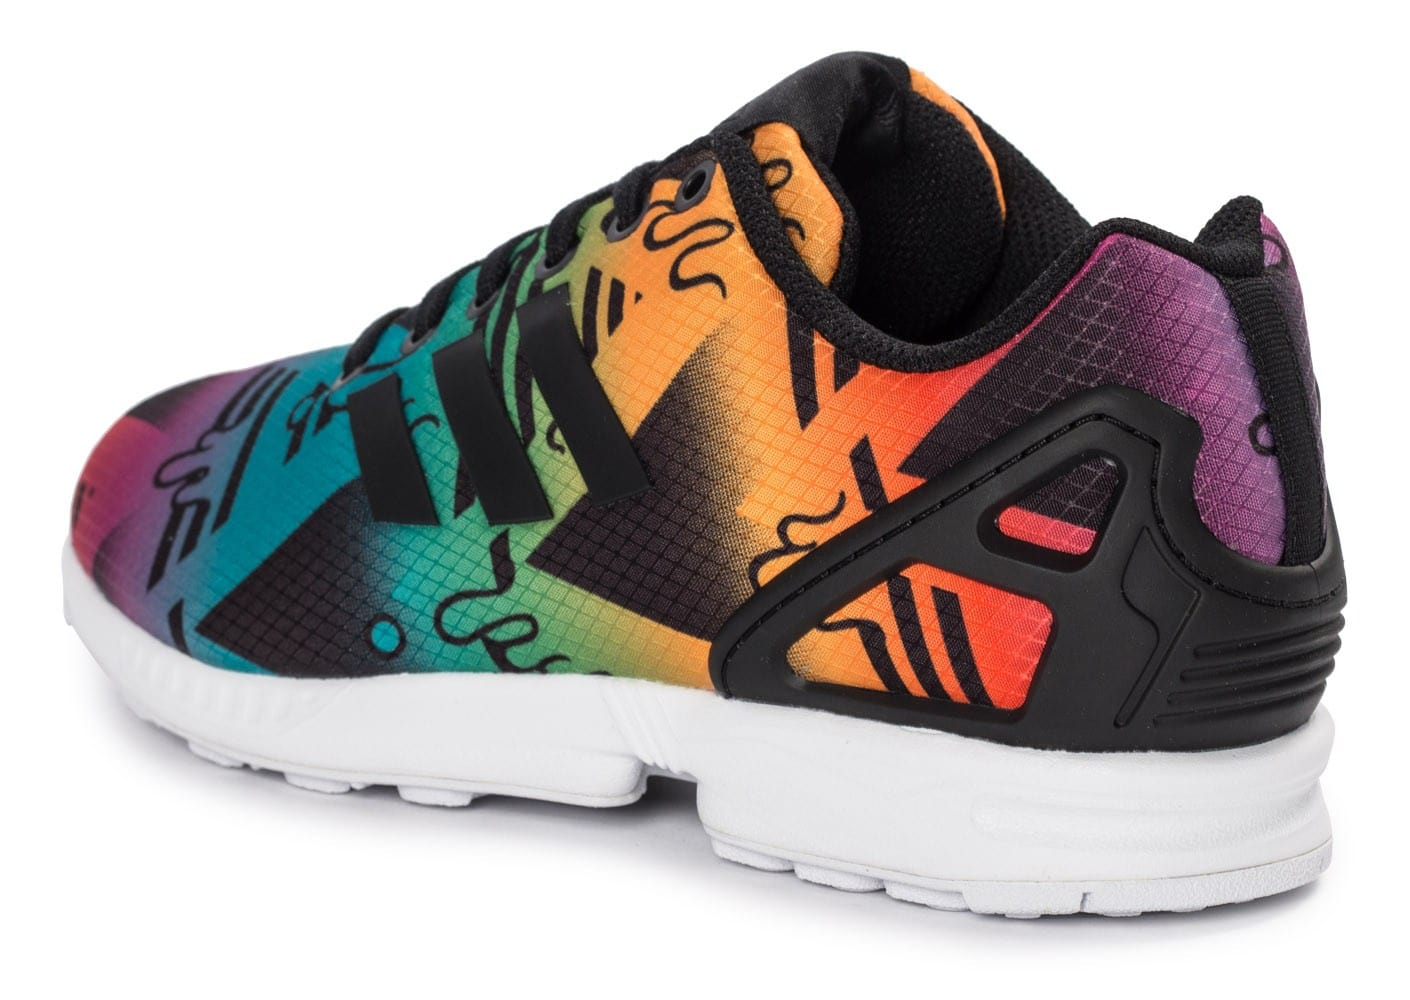 adidas Zx Flux Multicolor Chaussures Baskets homme Chausport